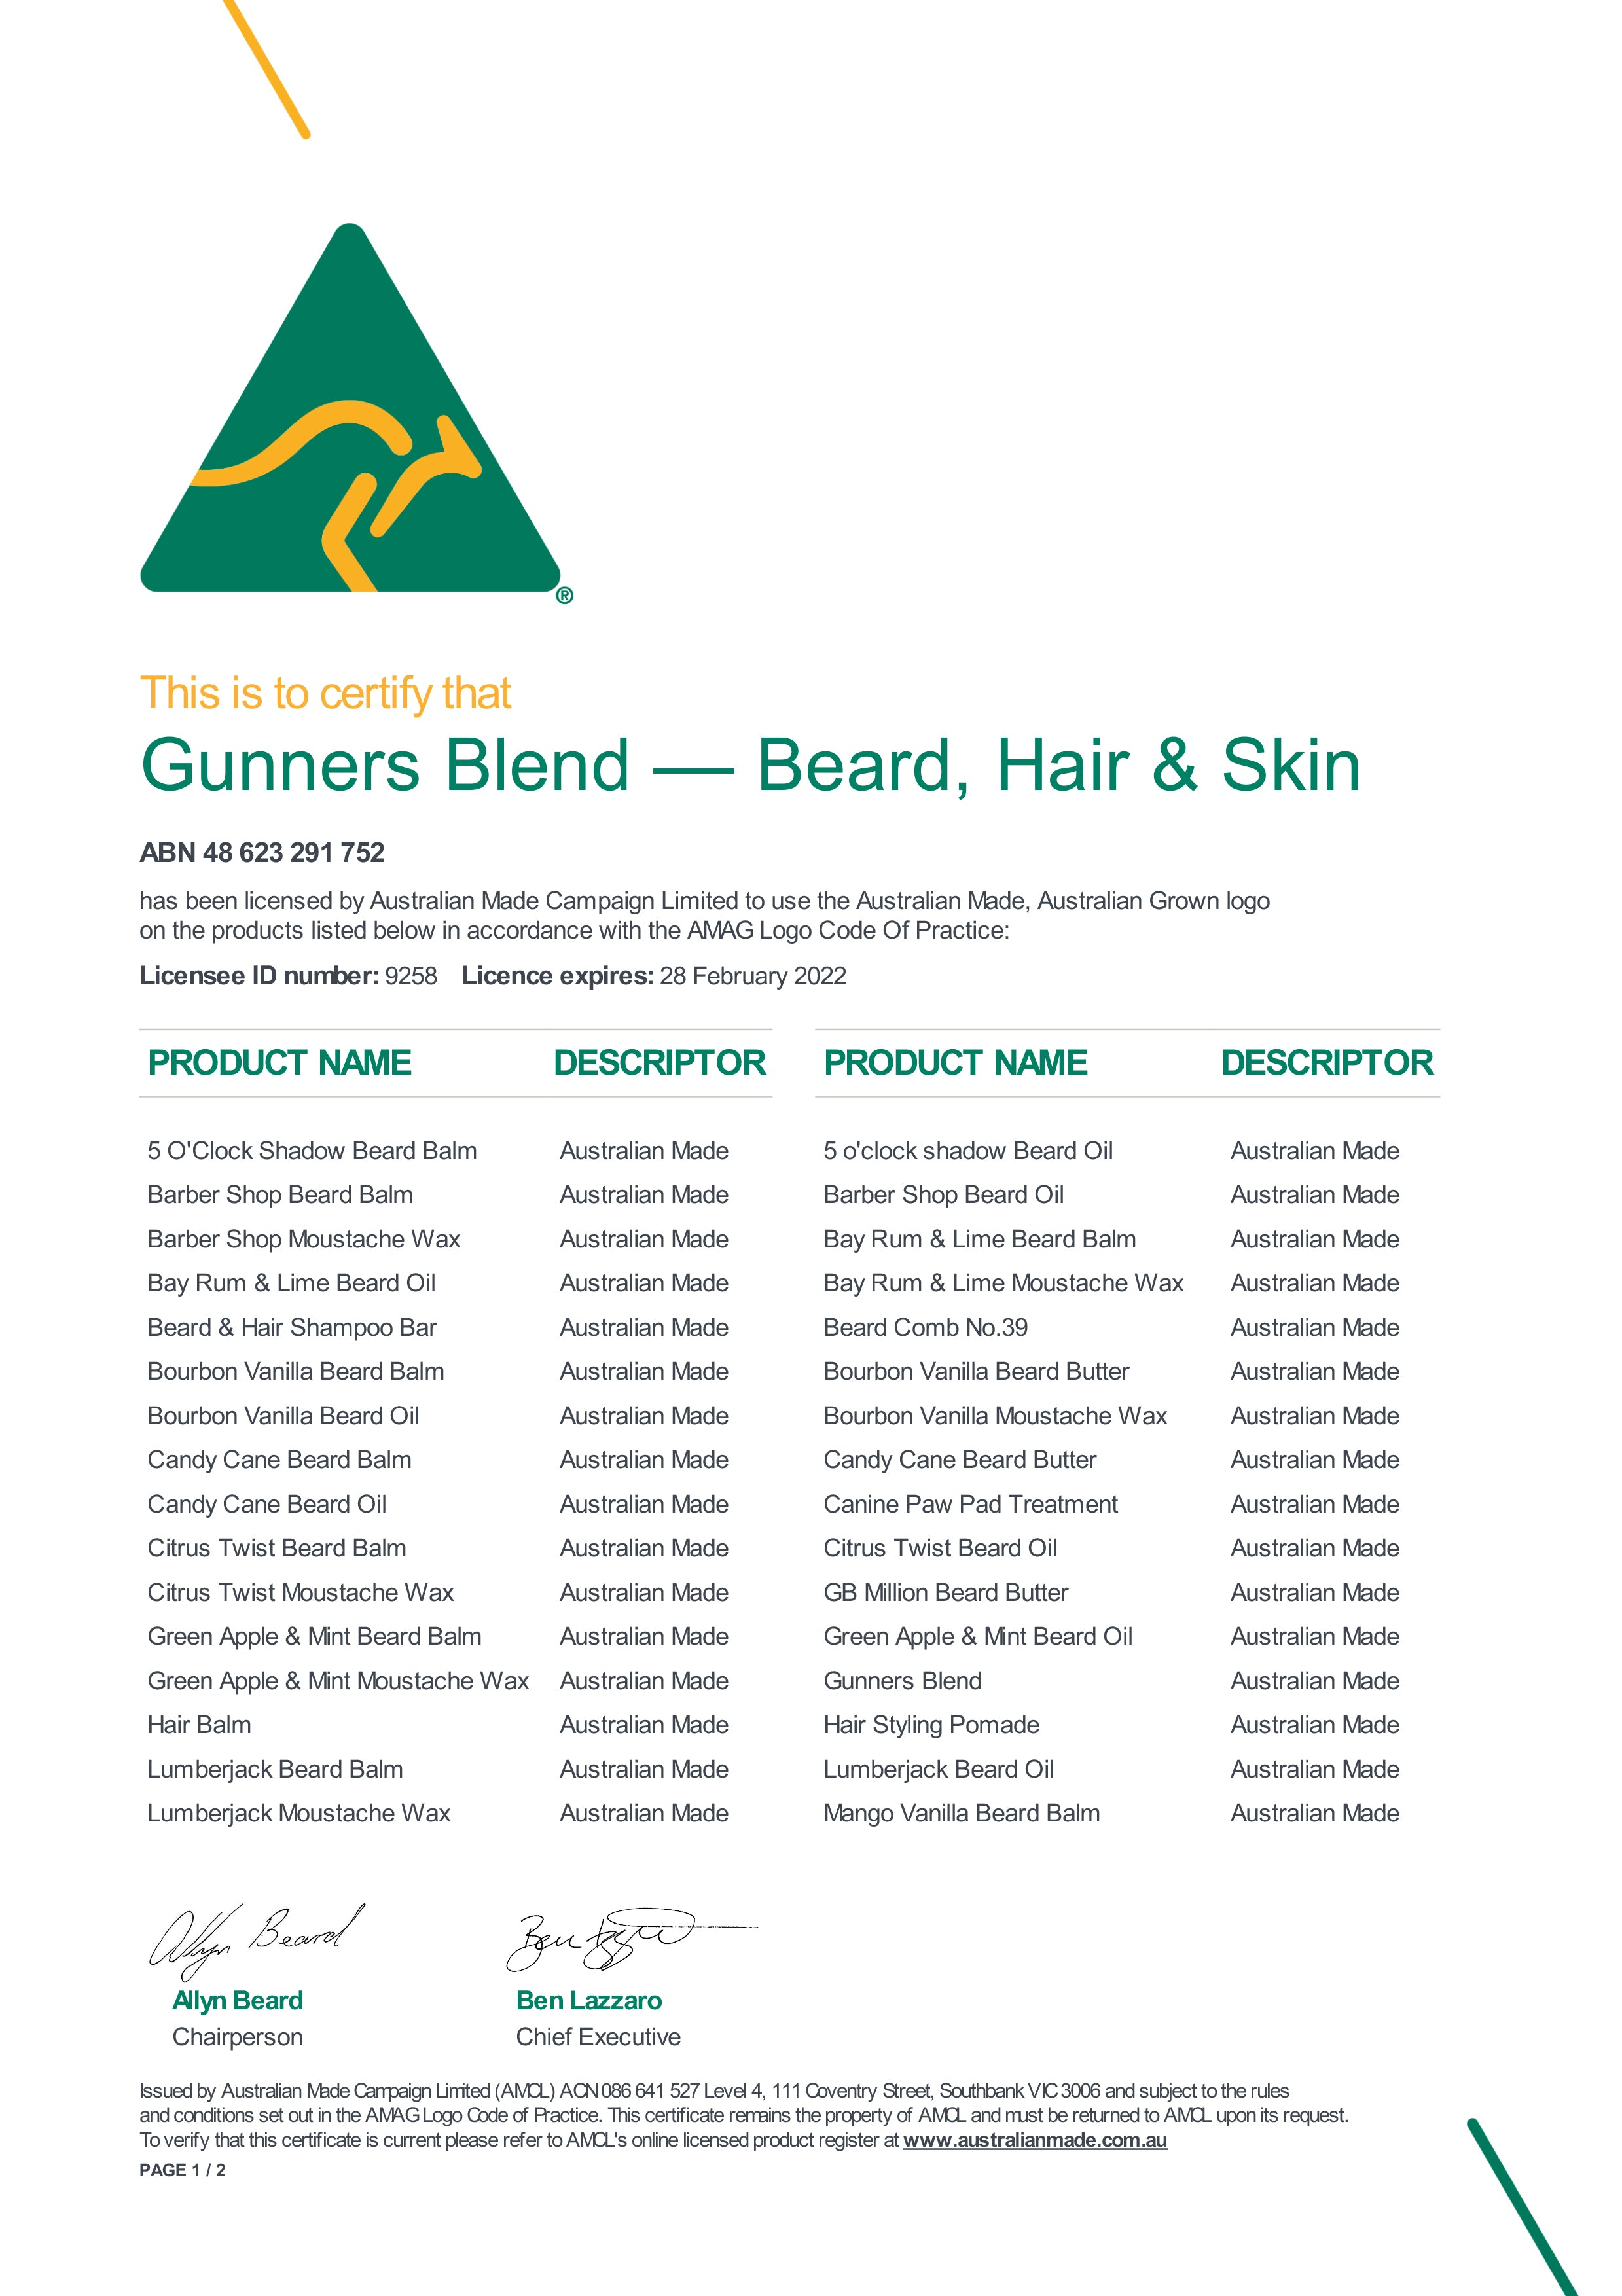 Gunners Blend Australian Made and Owned Beard, Hair and Skin Products